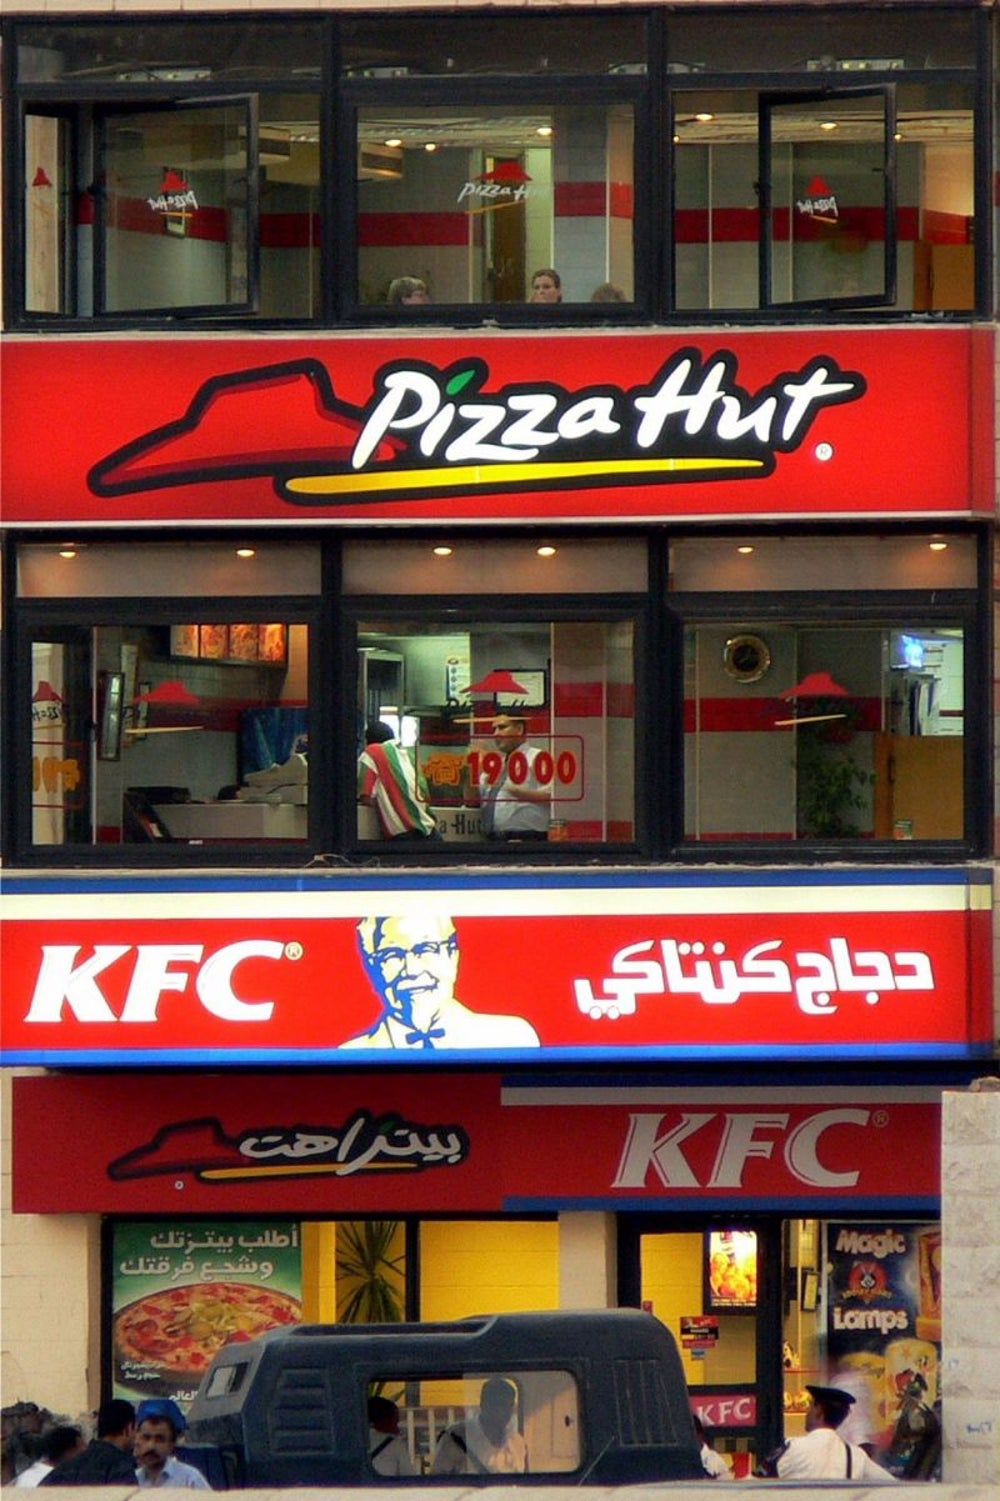 Pizza Hut/KFC Combo at the Pyramids